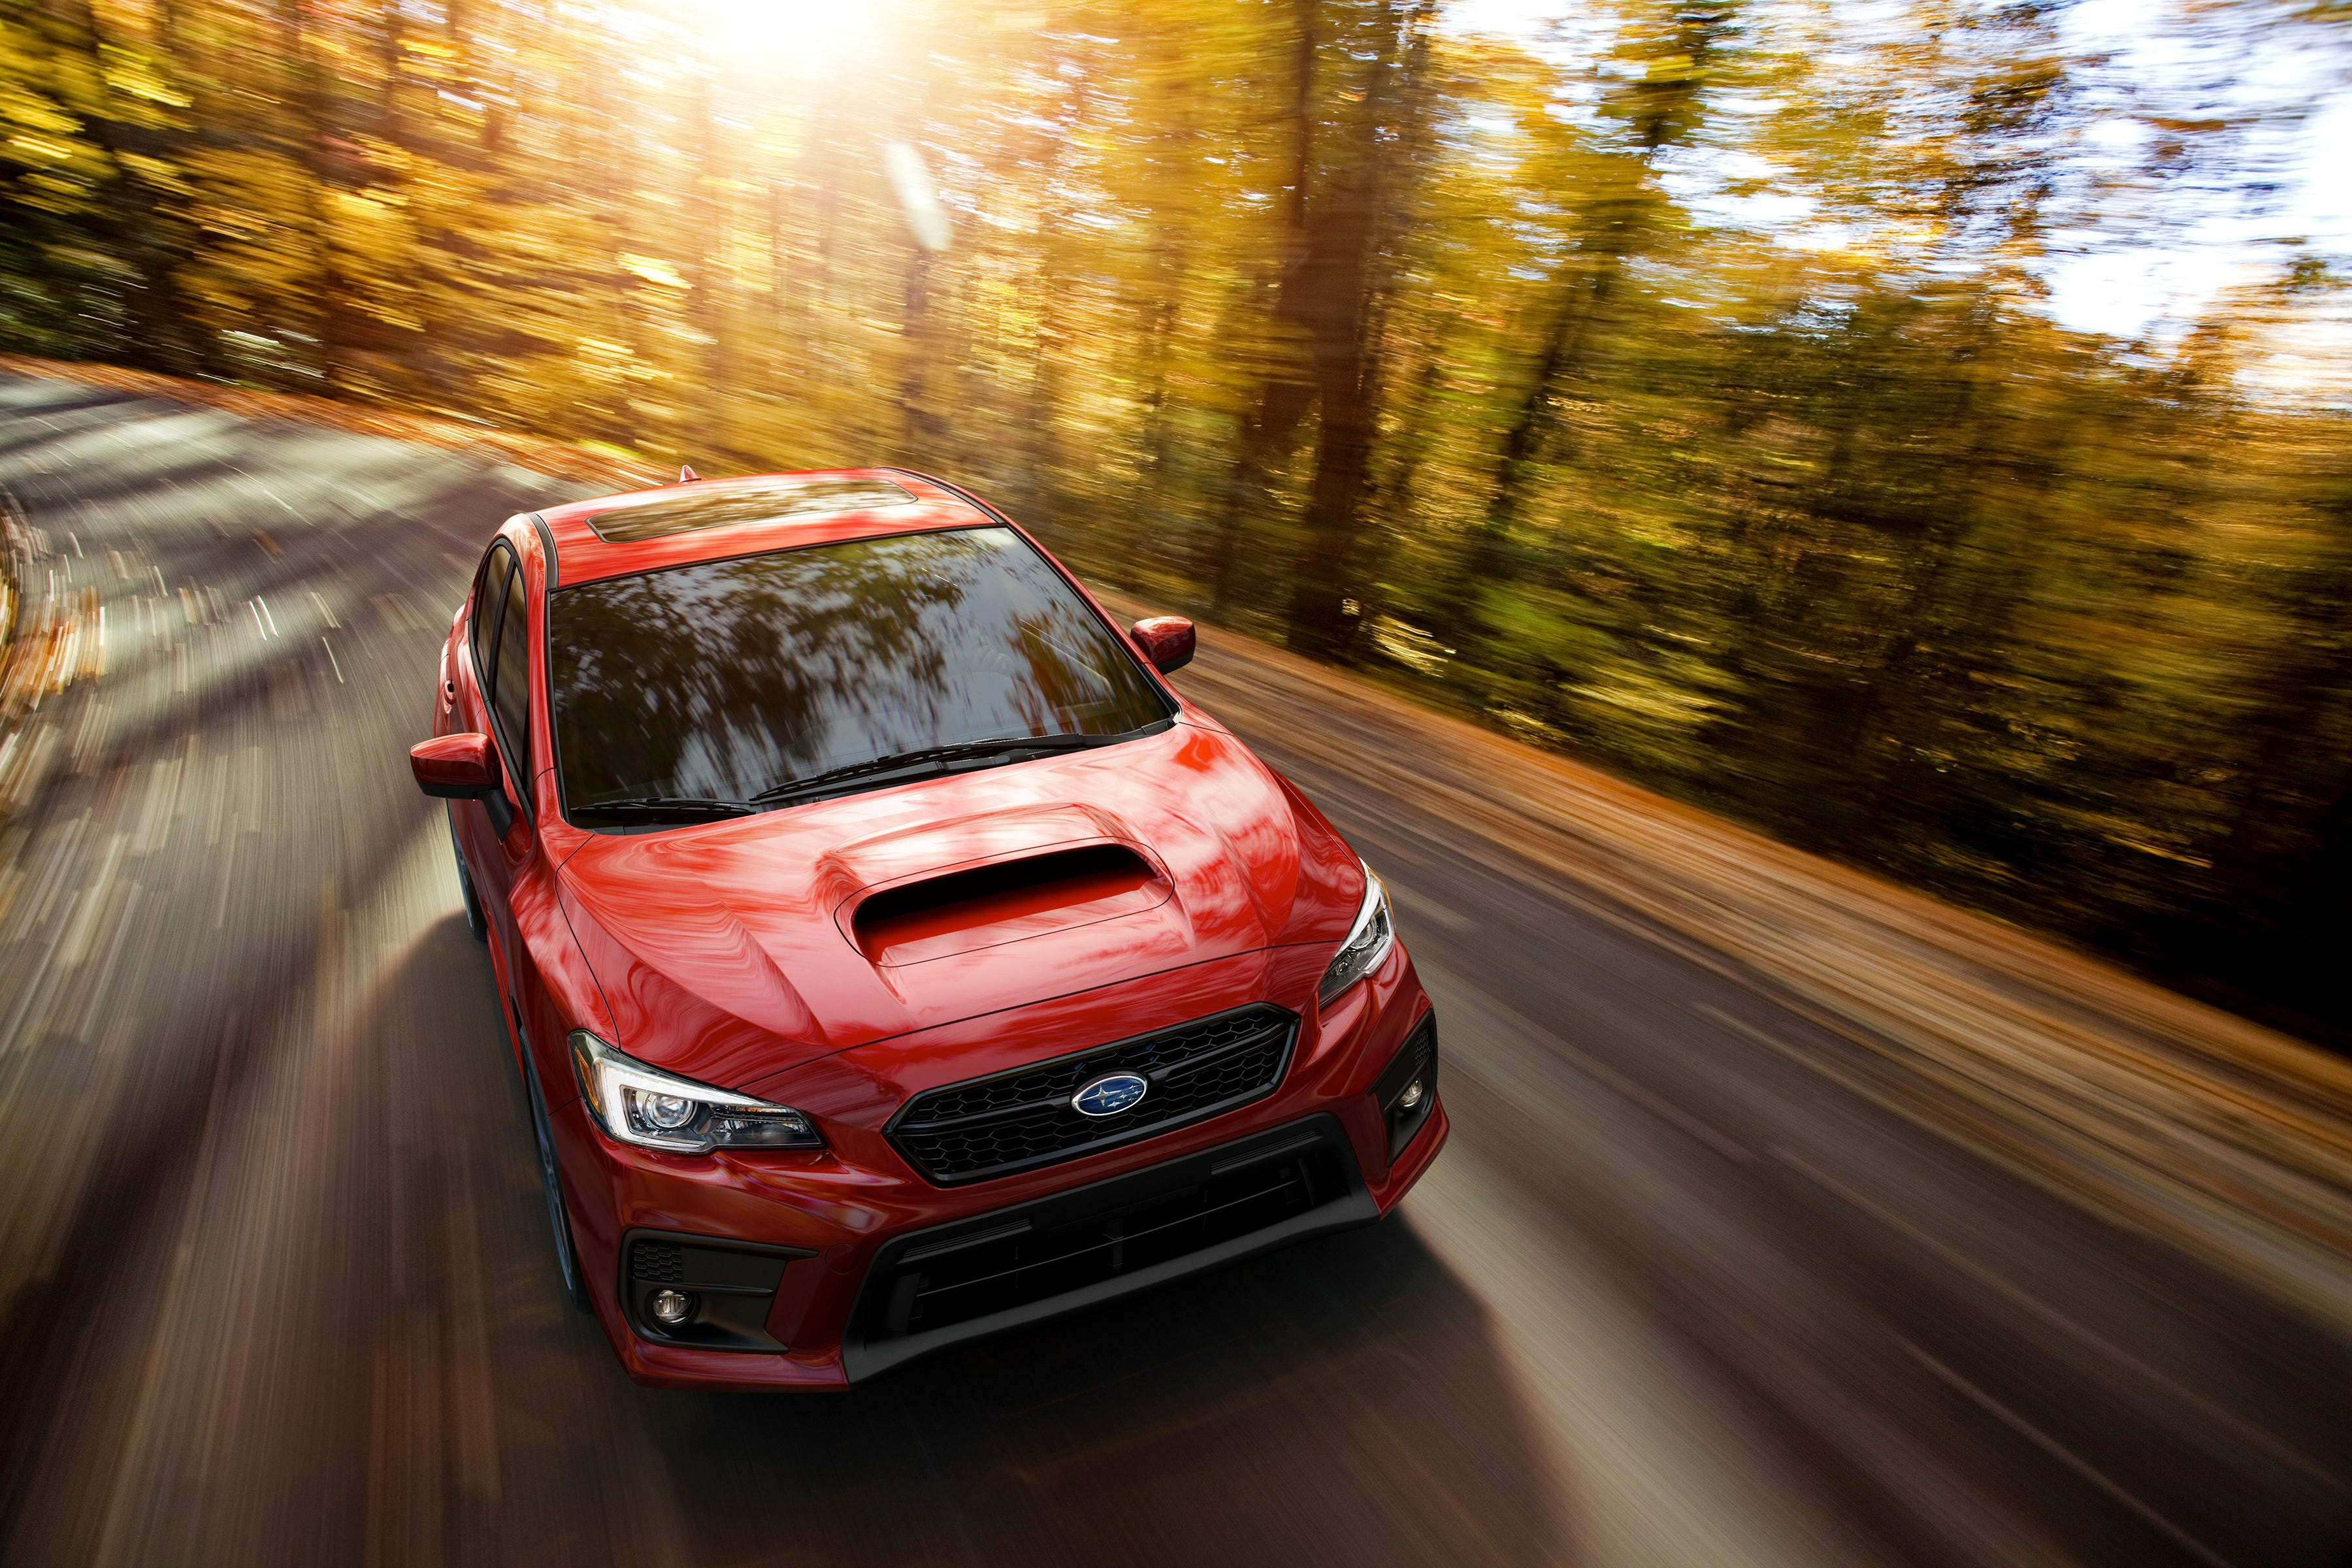 Subaru WRX owners have the most speeding tickets, Insurify study says